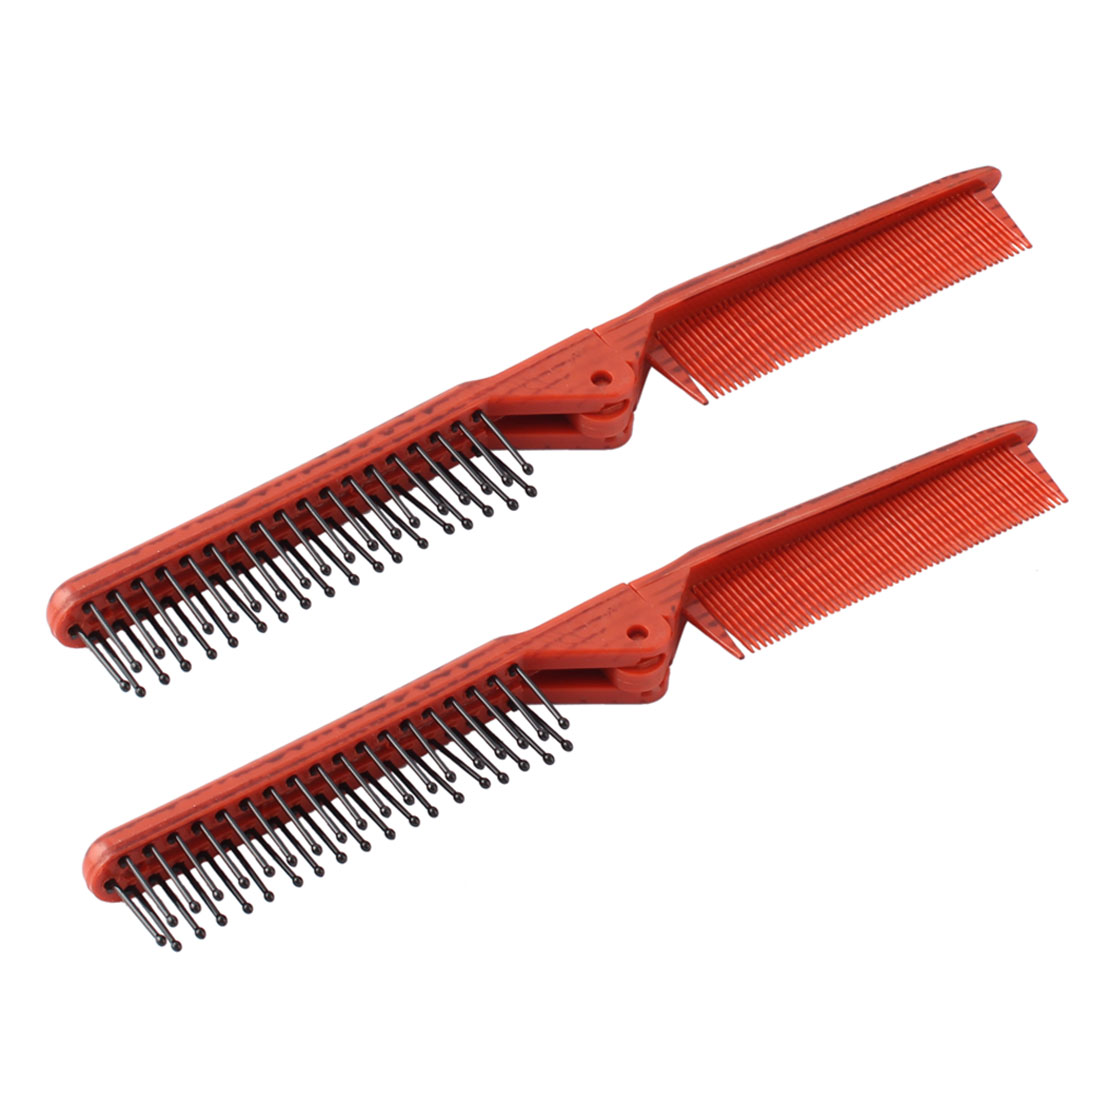 Home Salon Plastic Double Heads Folding Anti-static Hair Styling Comb Dark Red 2 Pcs